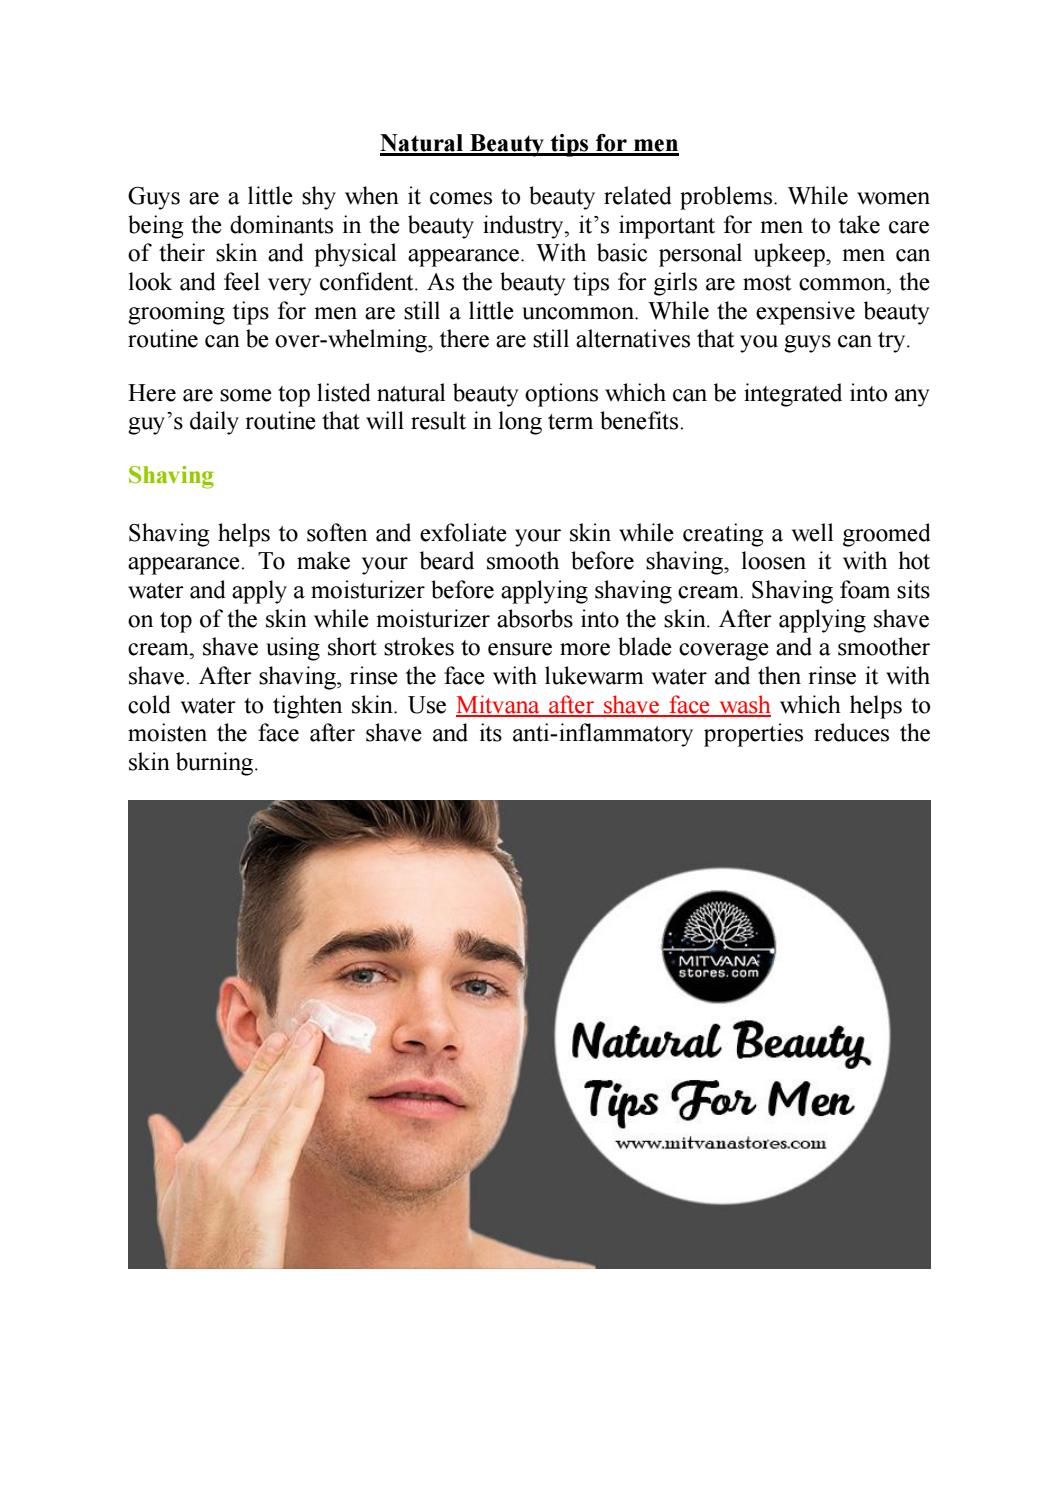 Natural Beauty tips for men by jay.kp9 - issuu